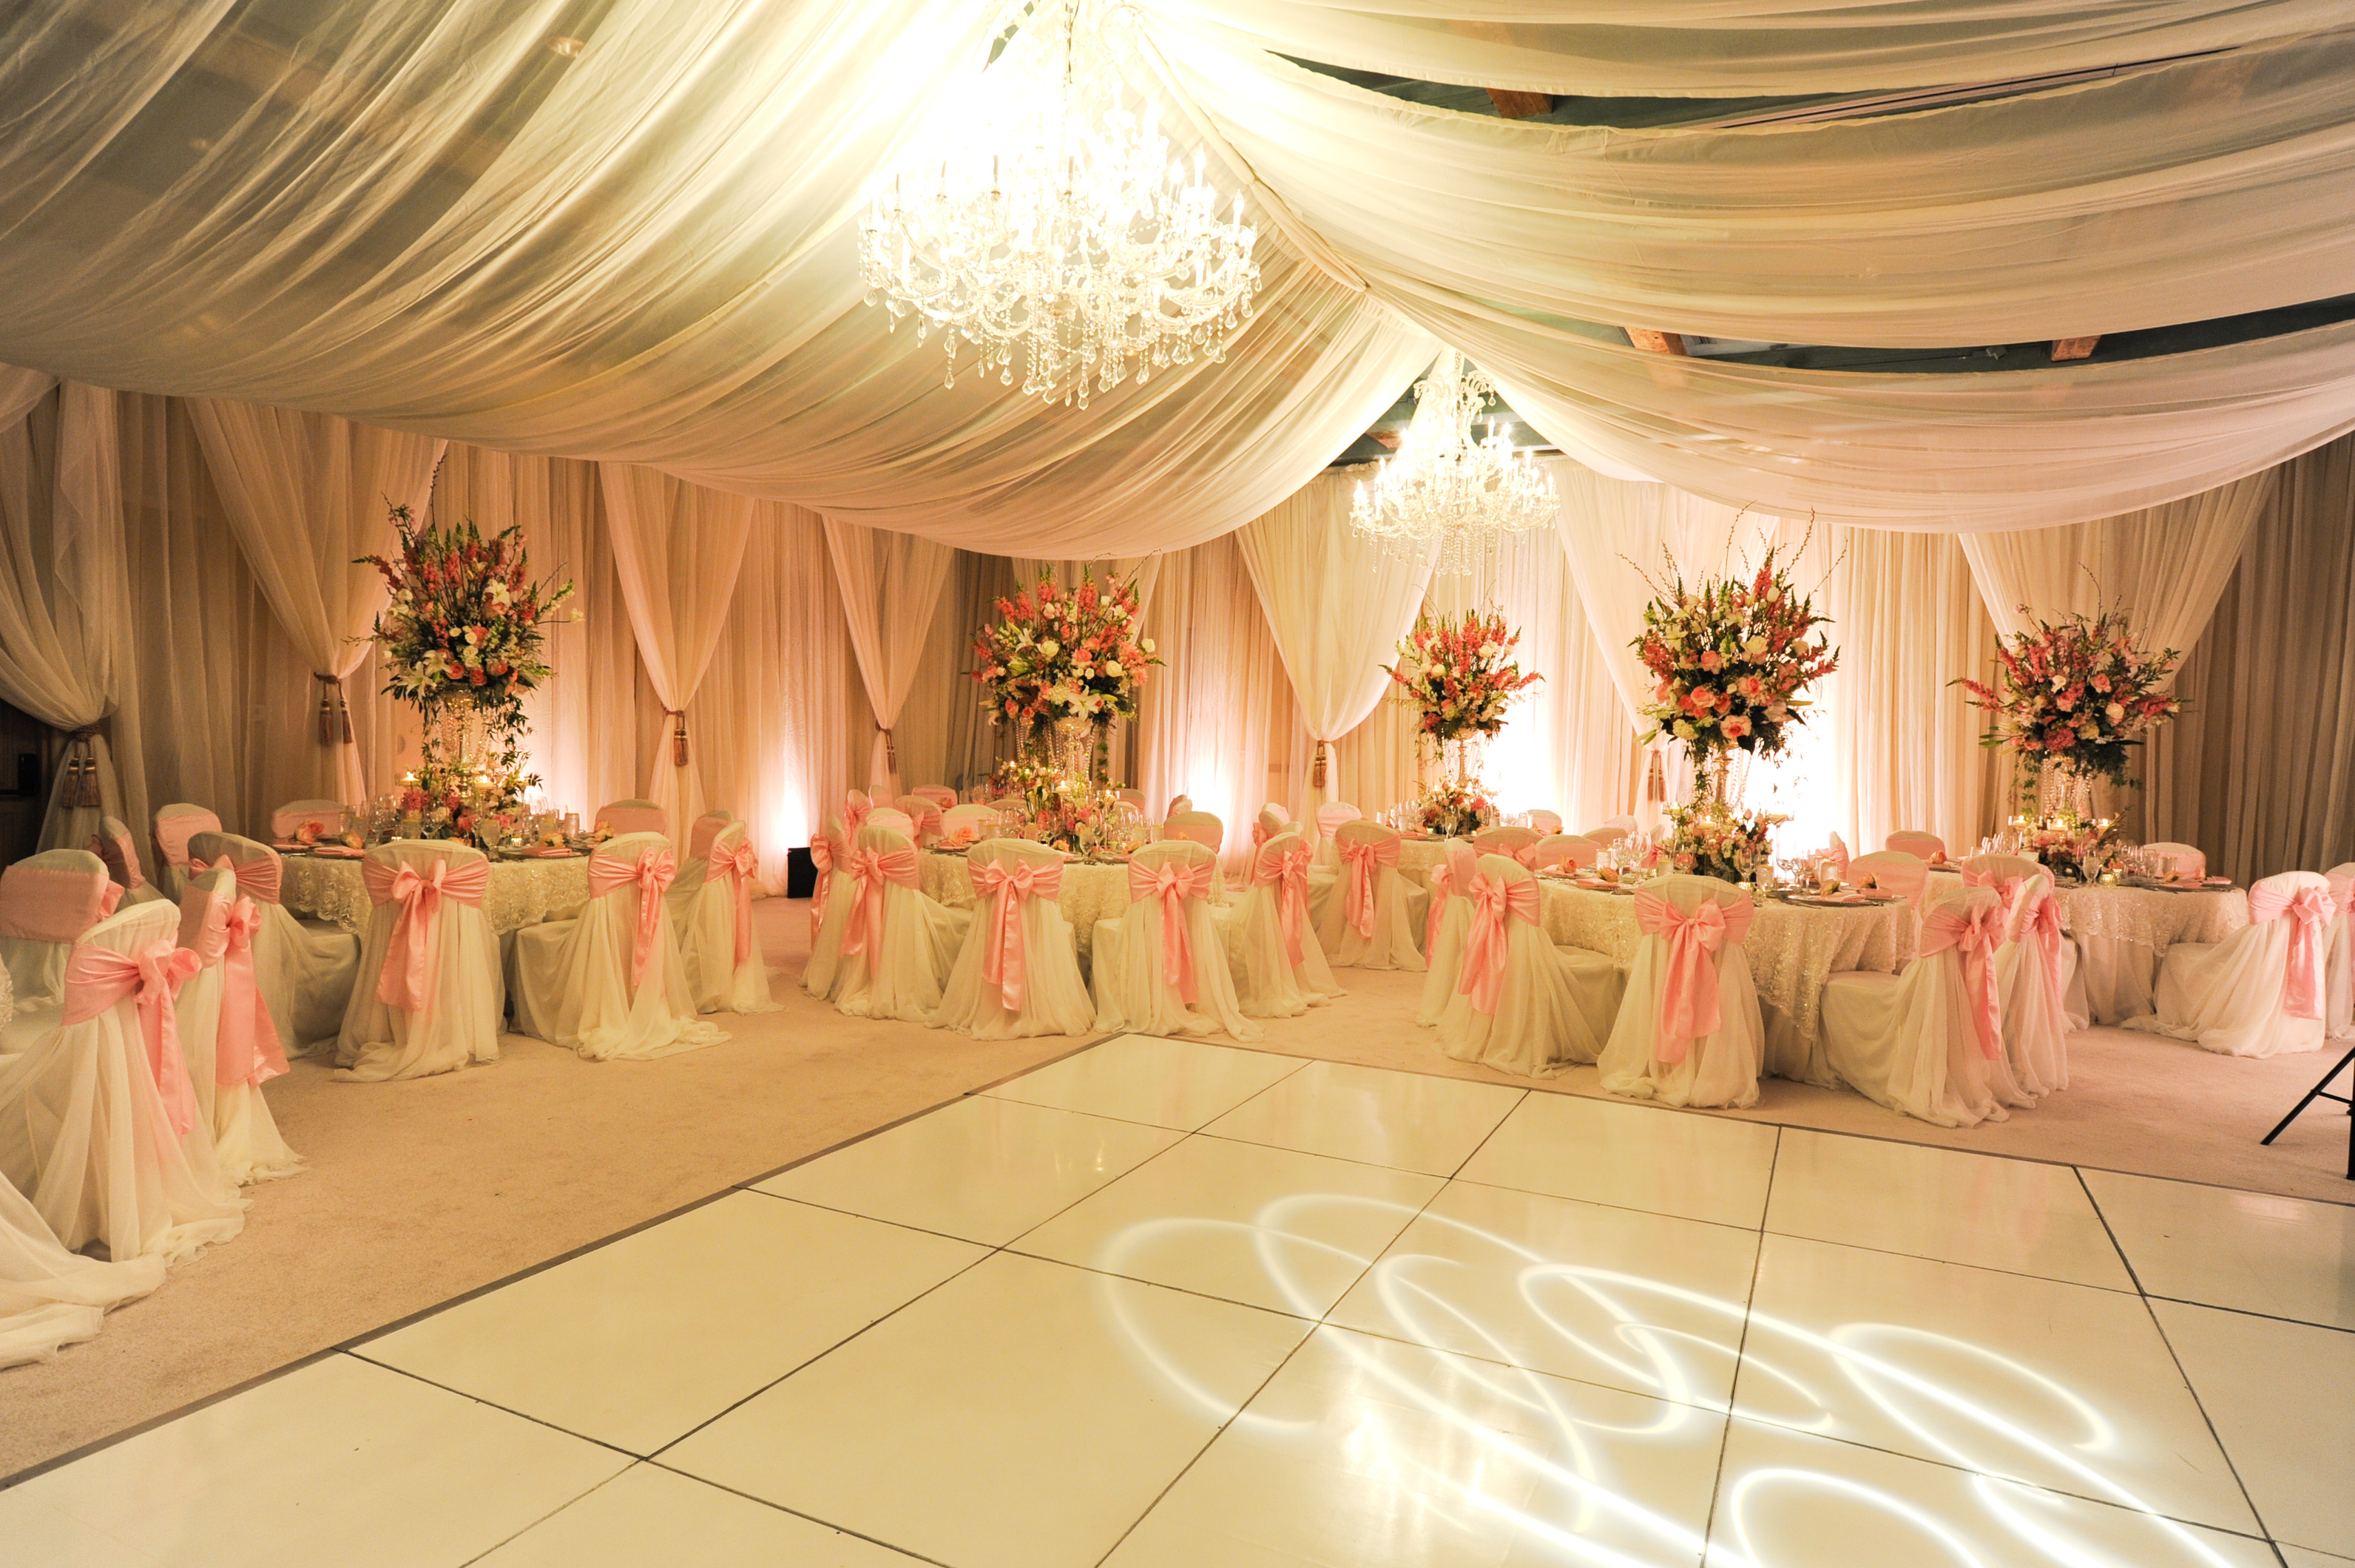 Norred S Weddings And Events: Show Stopper's Draping Can Transform A Space